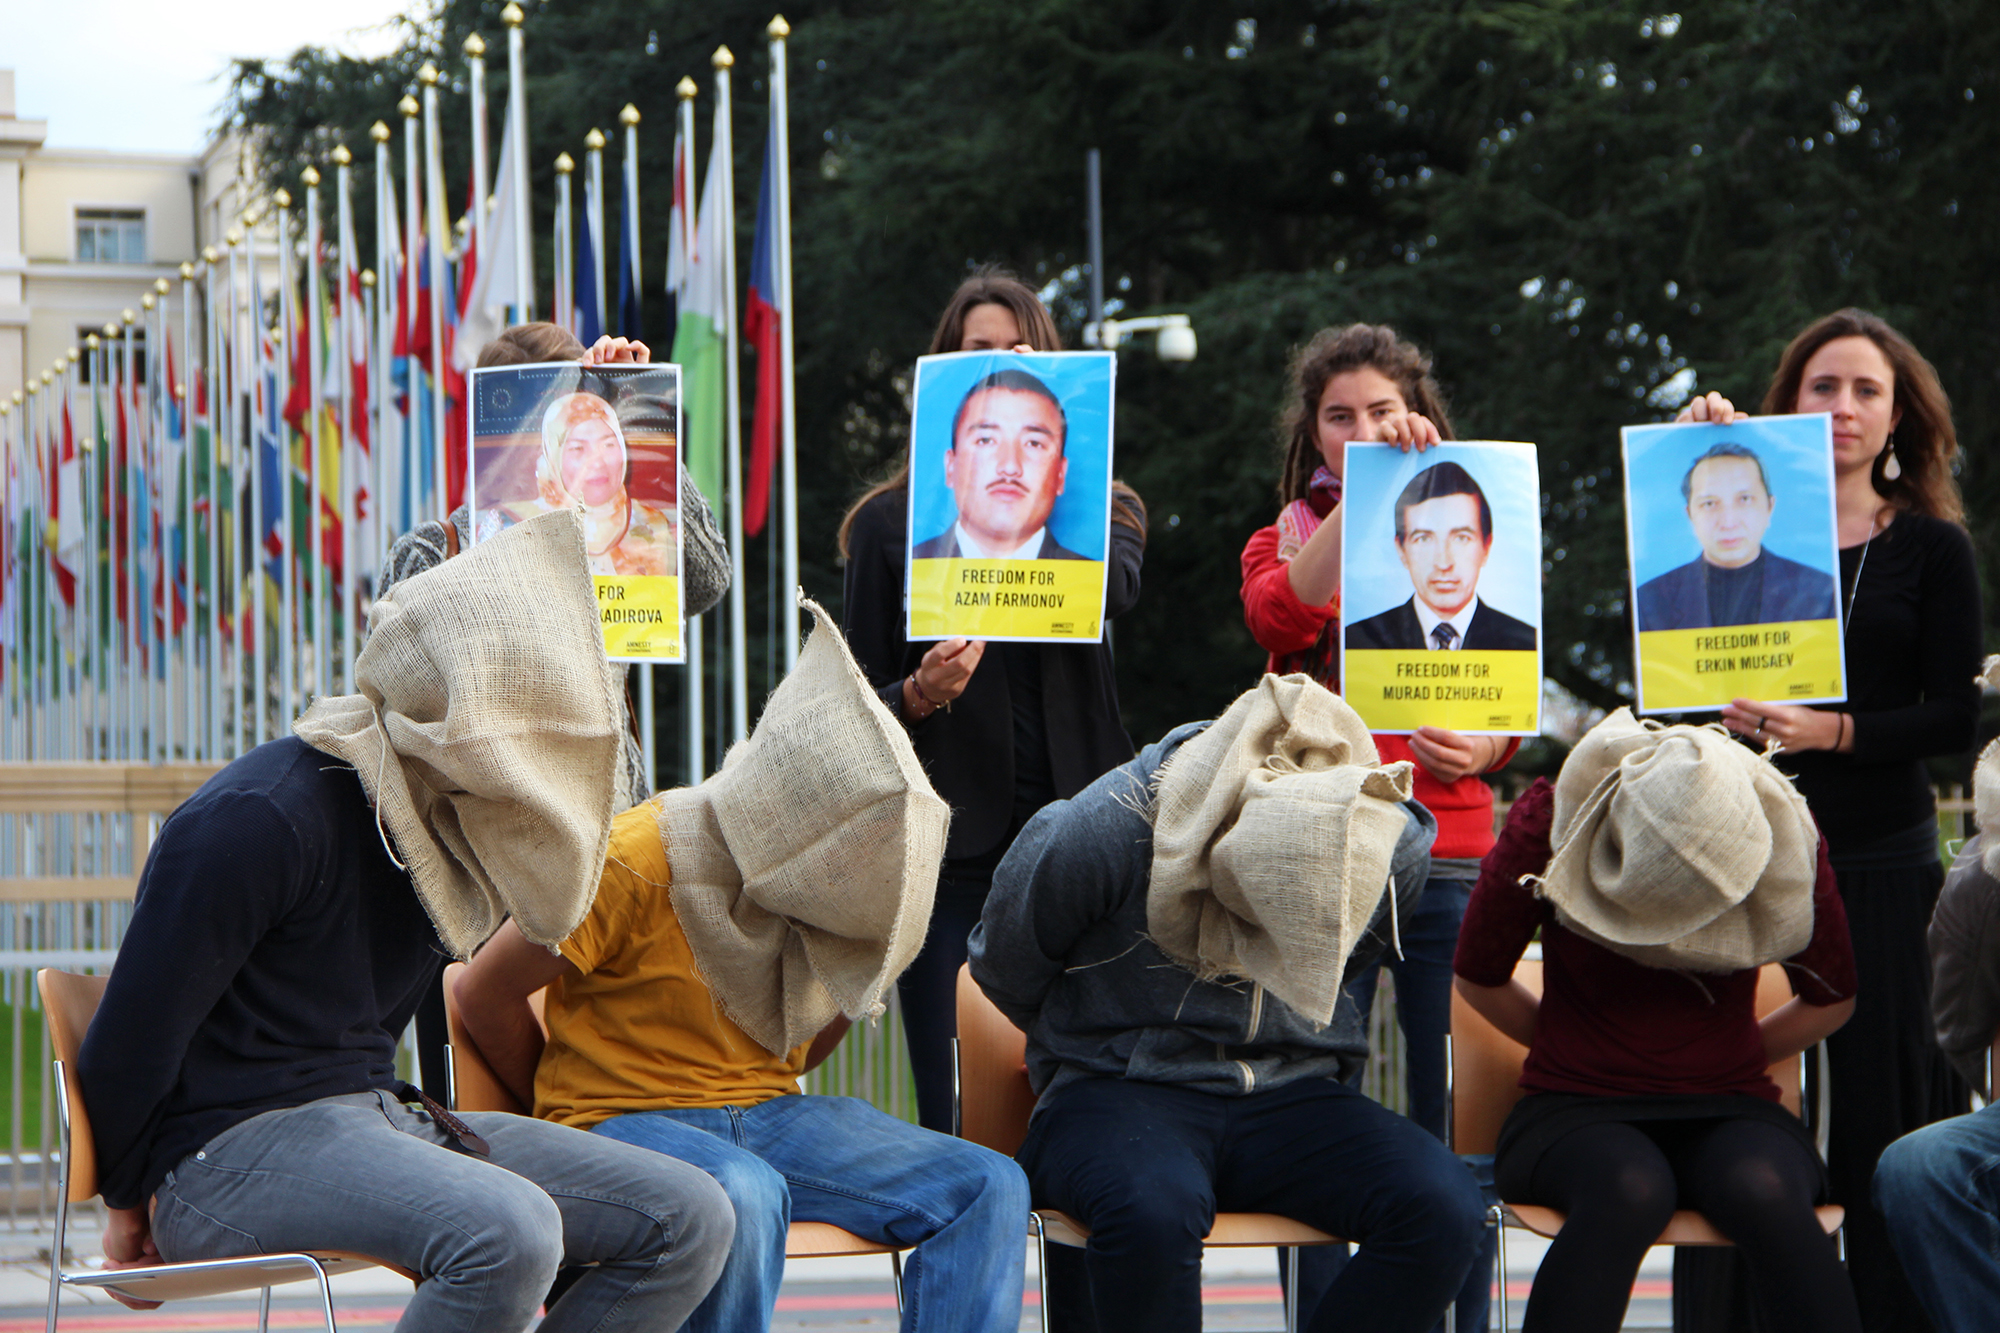 Activists of AI Switzerland bringing attention to human rights violations in Uzbekistan, demanding the release of Dilorom Abdukadirova, Azam Farmonov, Murad Dzhuraev and Erkin Musaev. Picture taken in front of the United Nations office in Geneva, Switzerland, October 21 2014